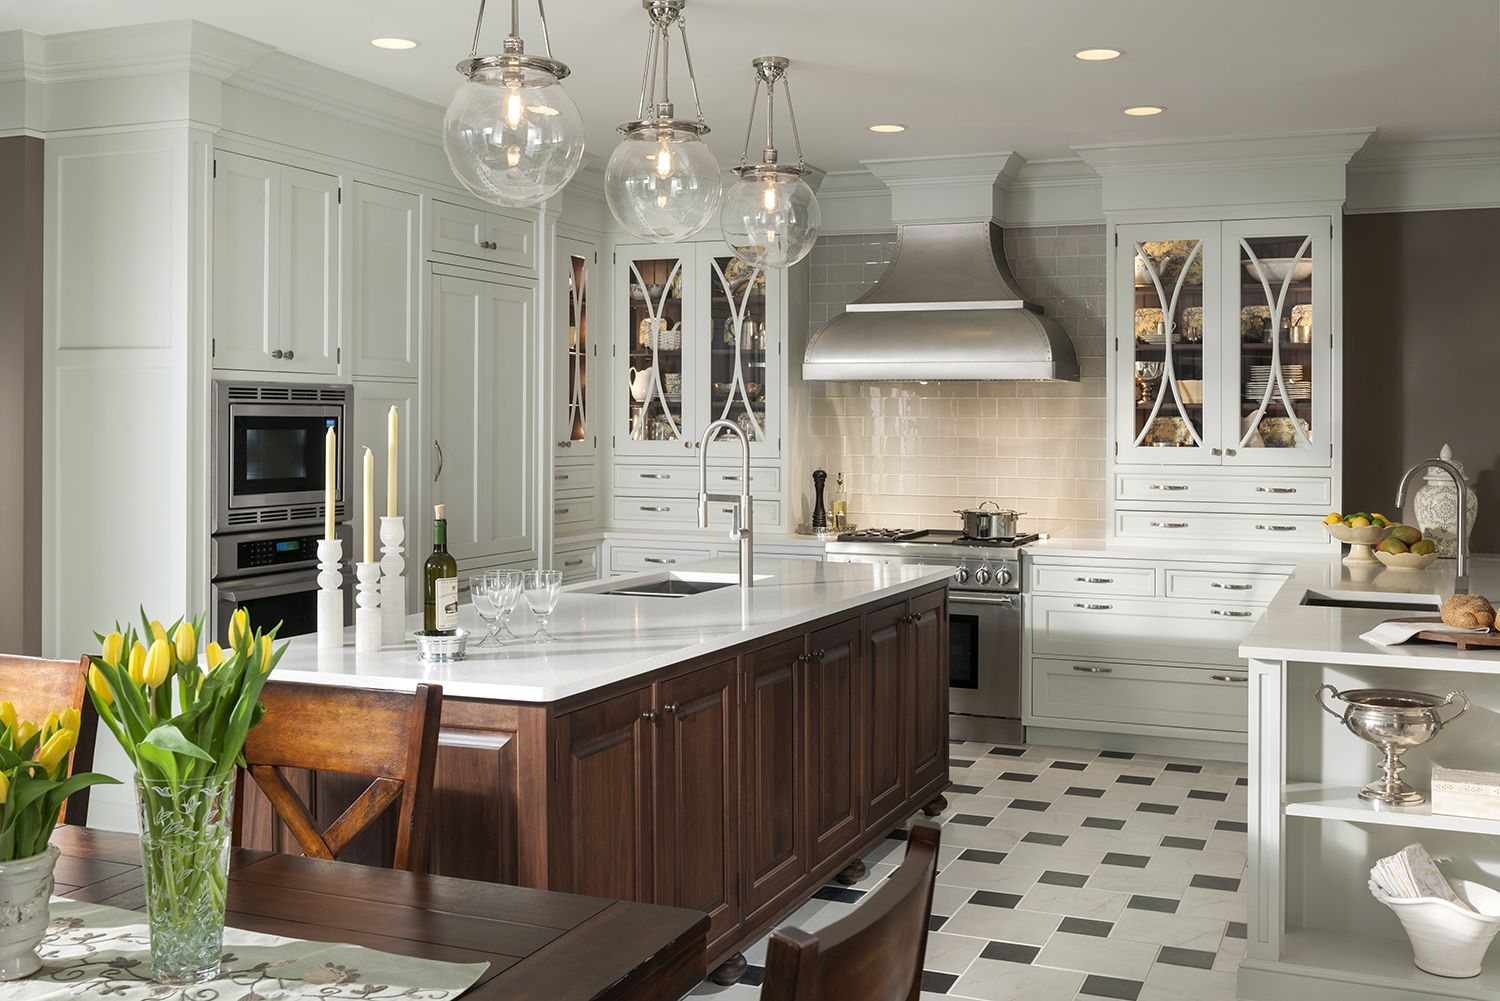 Embassy Row Kitchen By Woodmode Shown In Putty And Classic Walnut Finishes On Alexandria Door Style Wood Mode Kitchen Renovation Kitchen Design